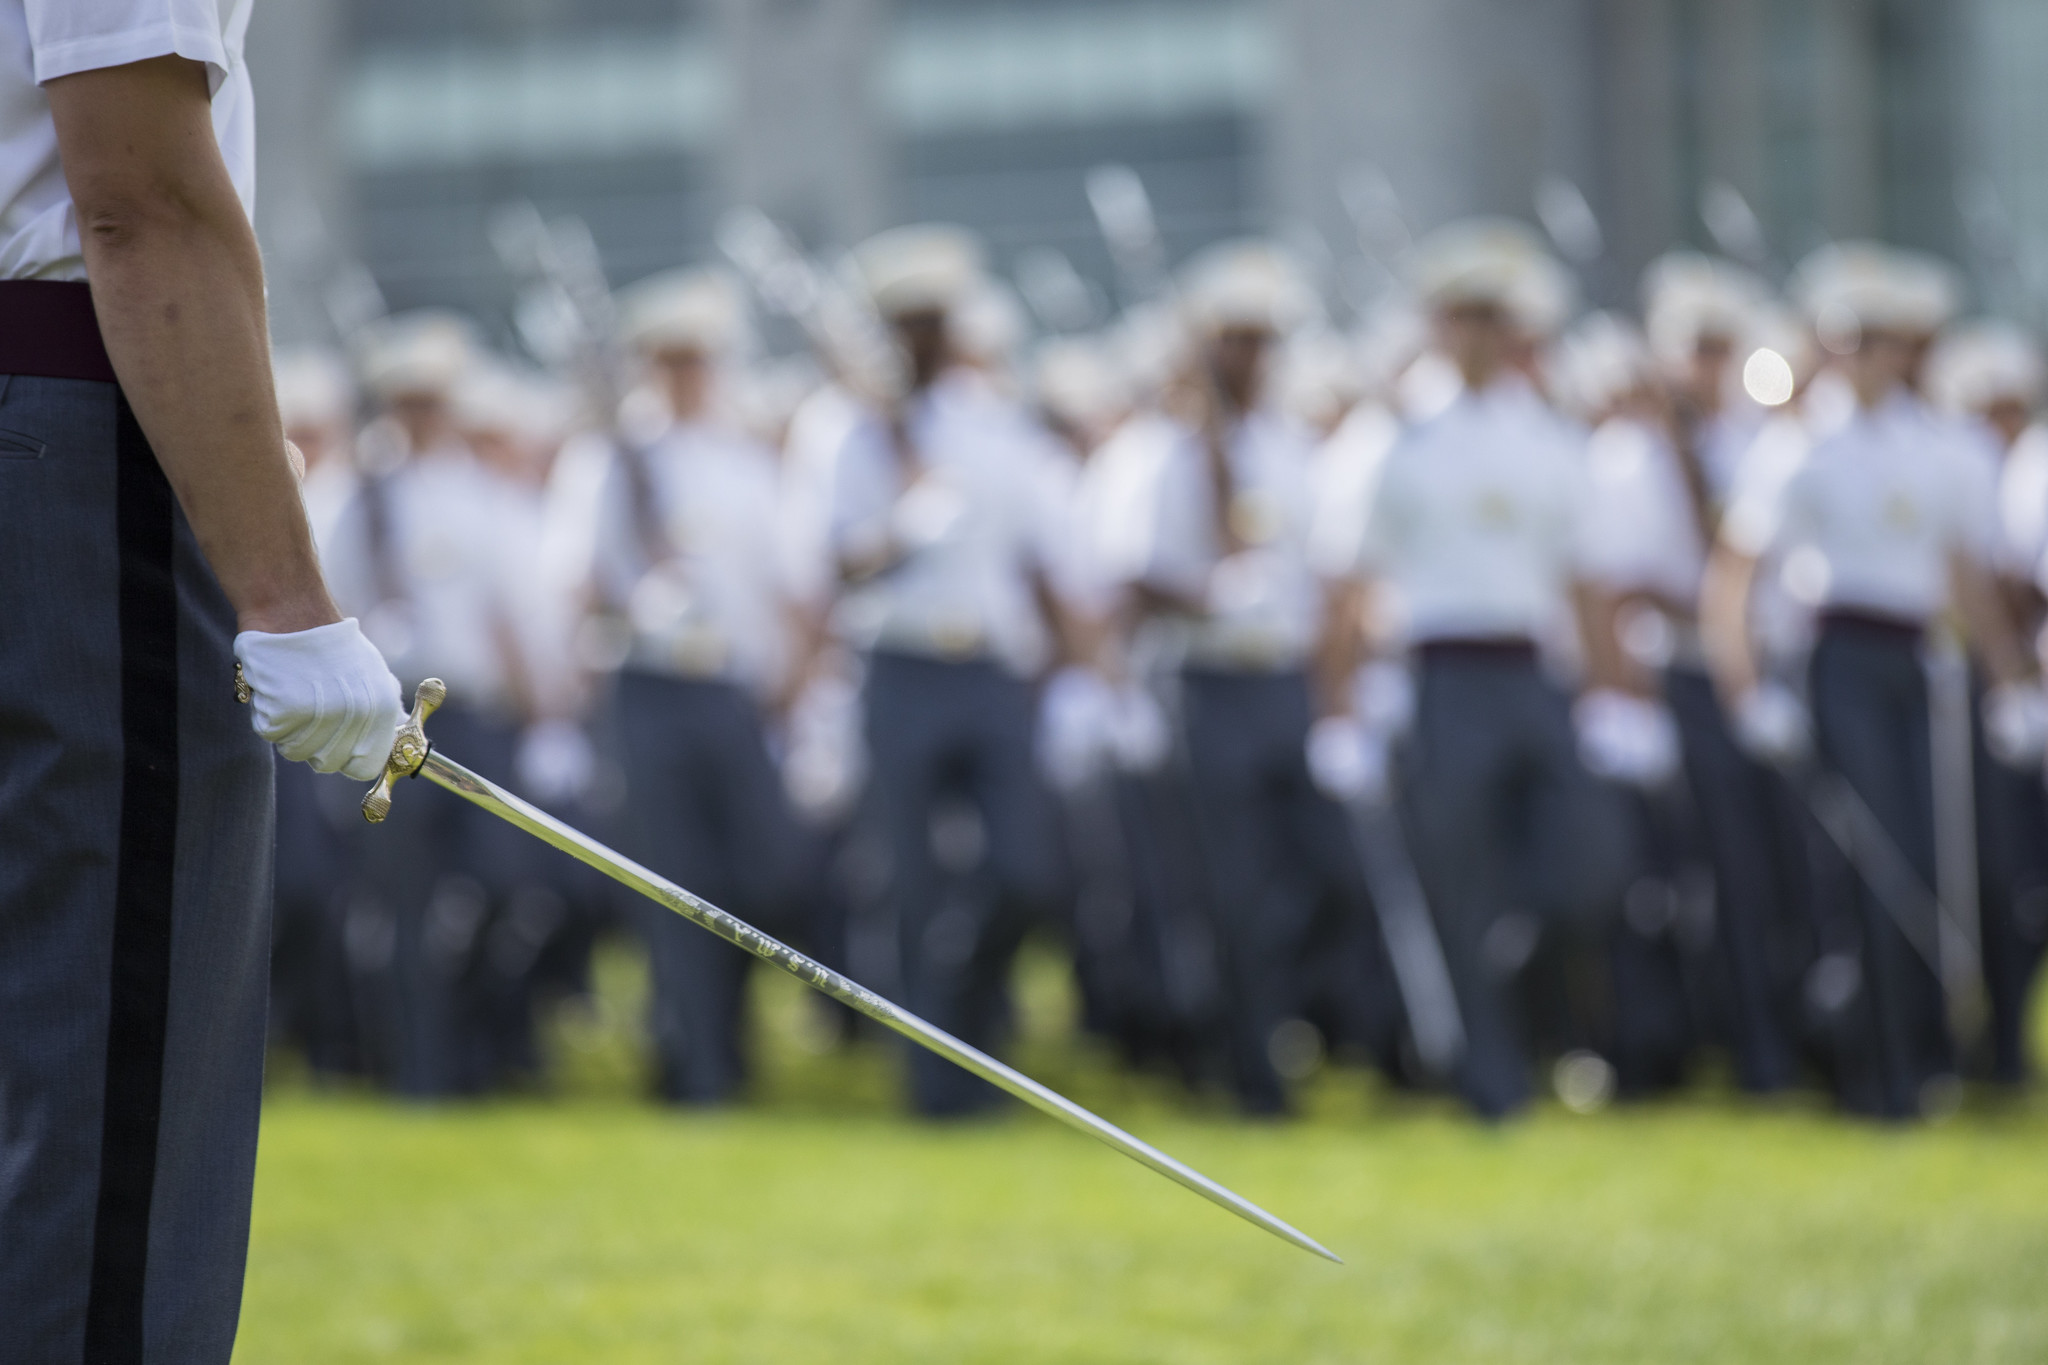 The U.S. Military Academy Corps of Cadets takes part in the review portion of the Acceptance Parade Aug. 17, 2019. The members of the Class of 2023 officially joined the Corps of Cadets during the parade. (Matthew Moeller/Army)